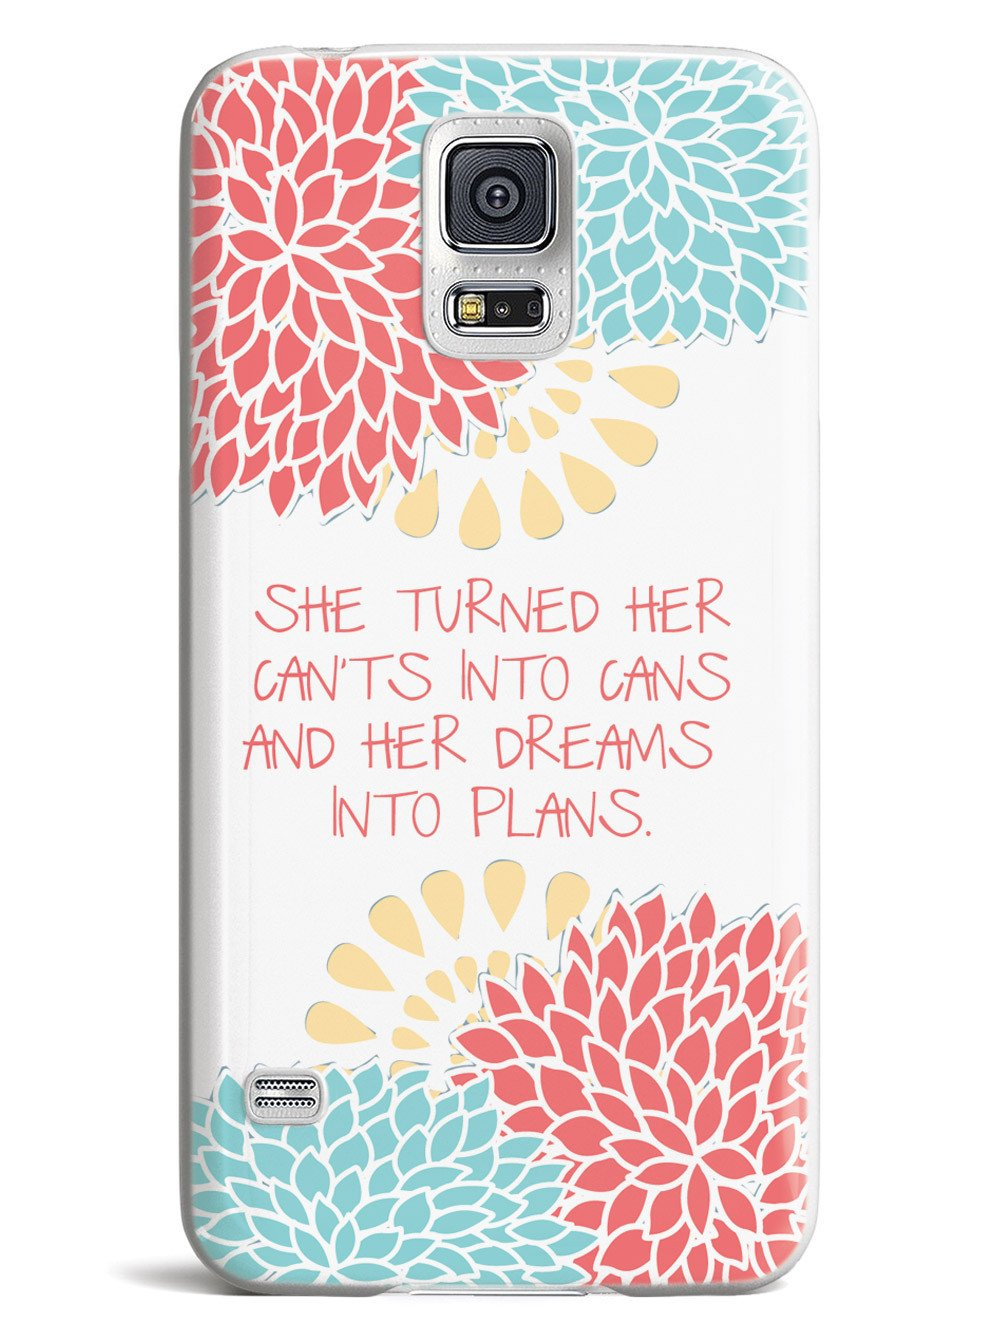 Cant's into Cans - Kobi Yamada Quote Case - pipercleo.com